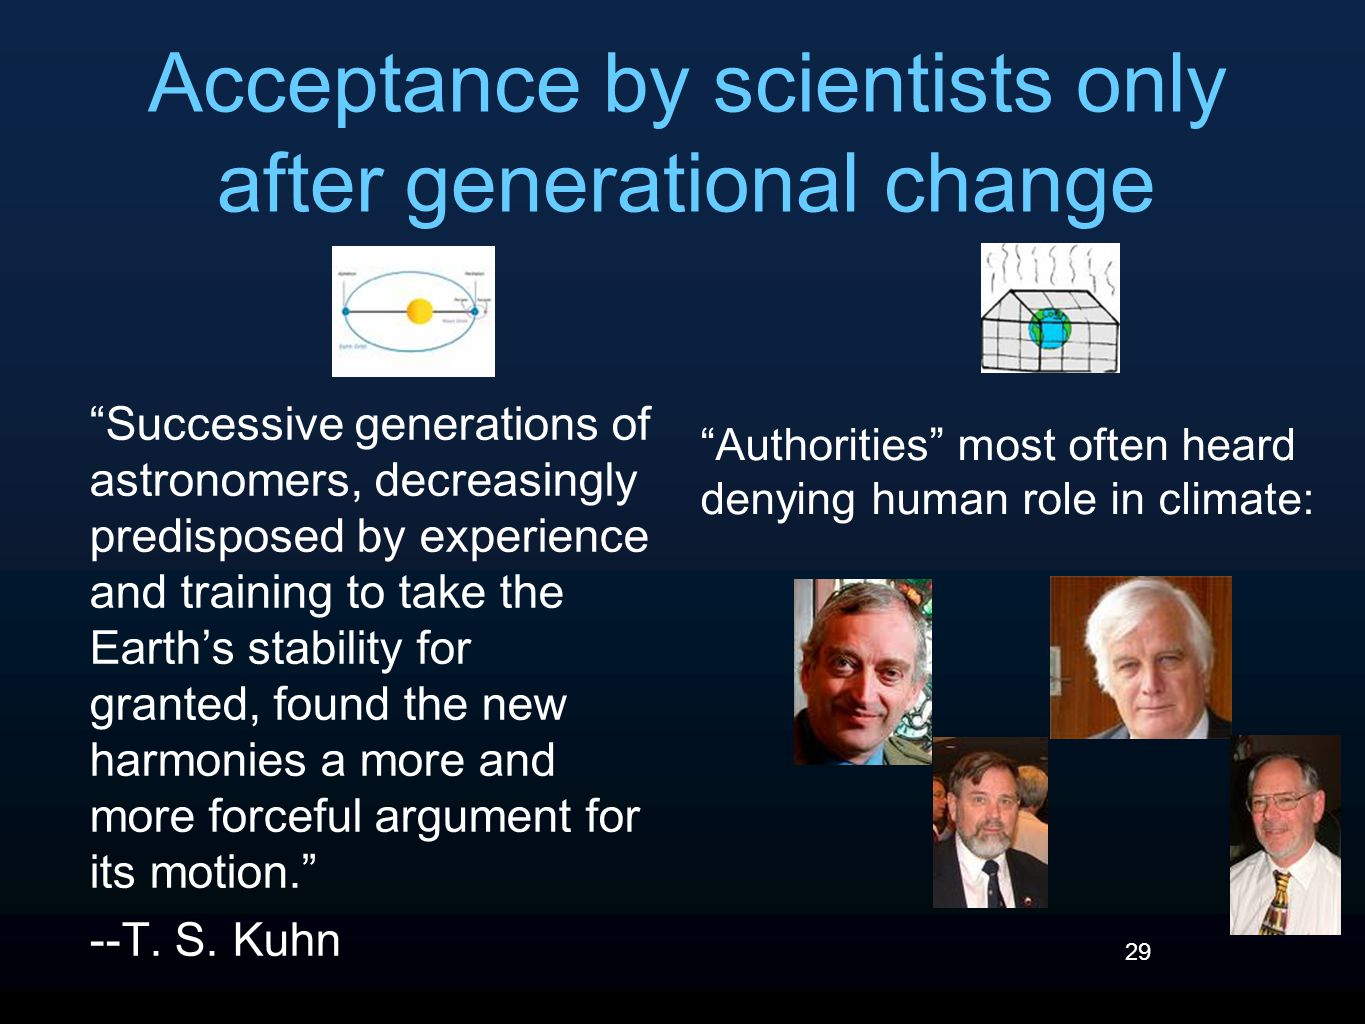 29 Acceptance by scientists only after generational change Successive generations of astronomers, decreasingly predisposed by experience and training to take the Earth's stability for granted, found the new harmonies a more and more forceful argument for its motion. --T.